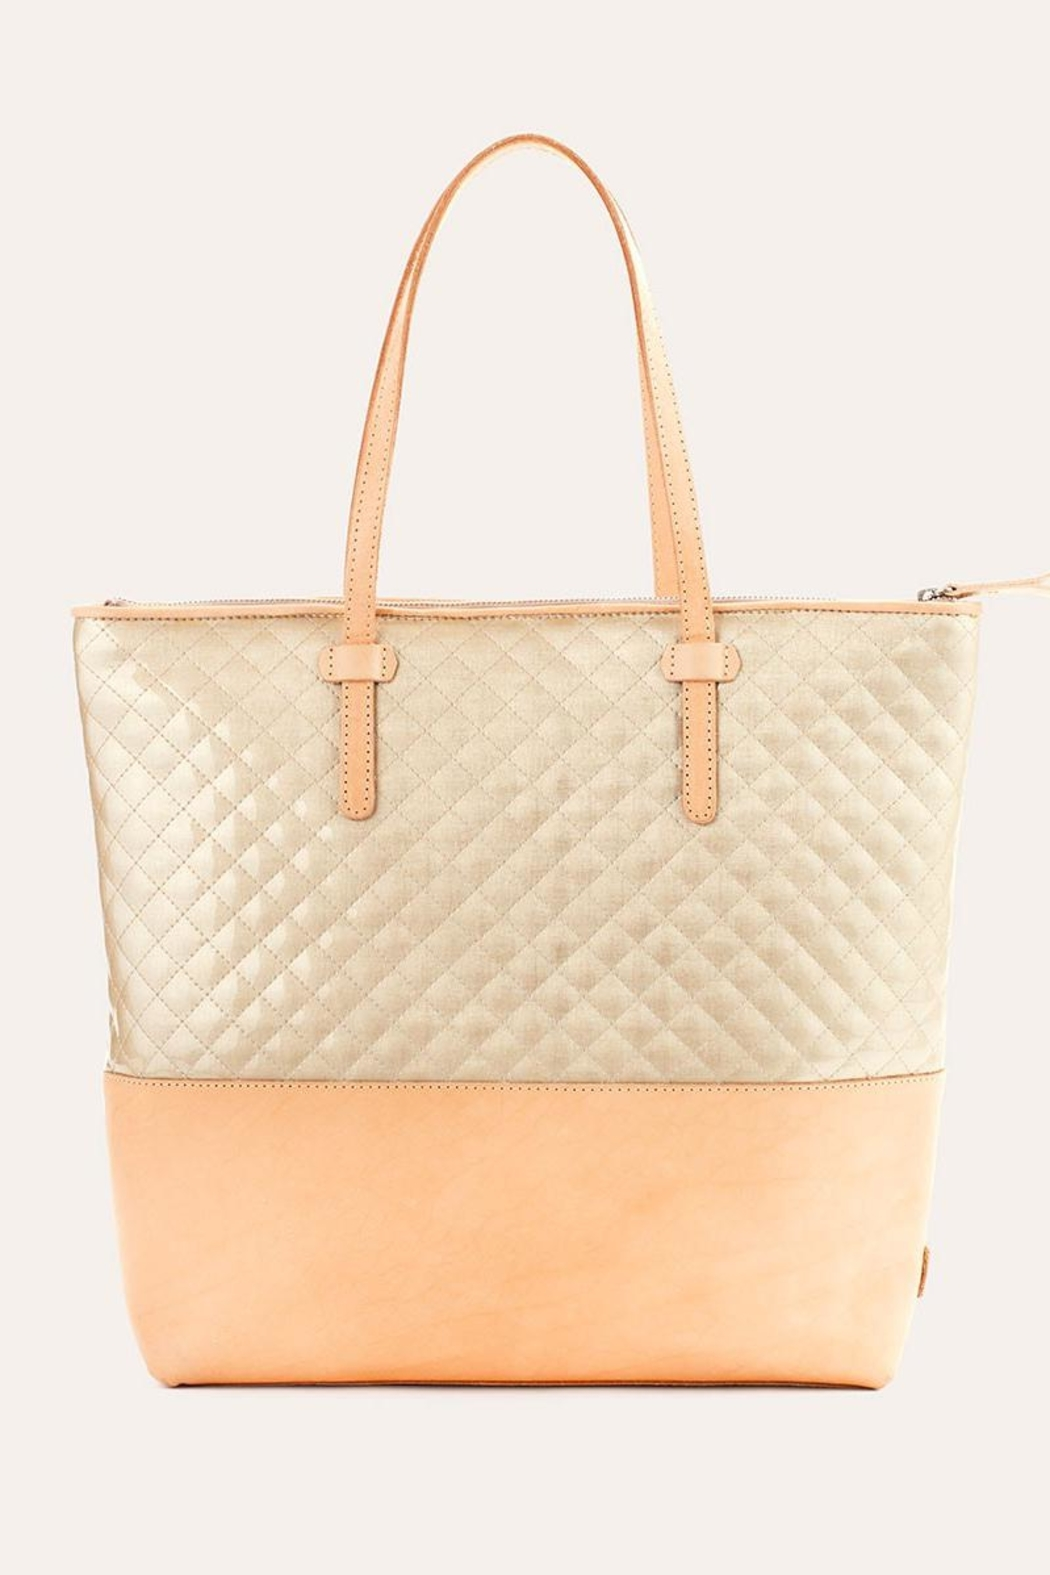 The Birds Nest MARKET TOTE-CANDY CHAMPAGNE - Main Image